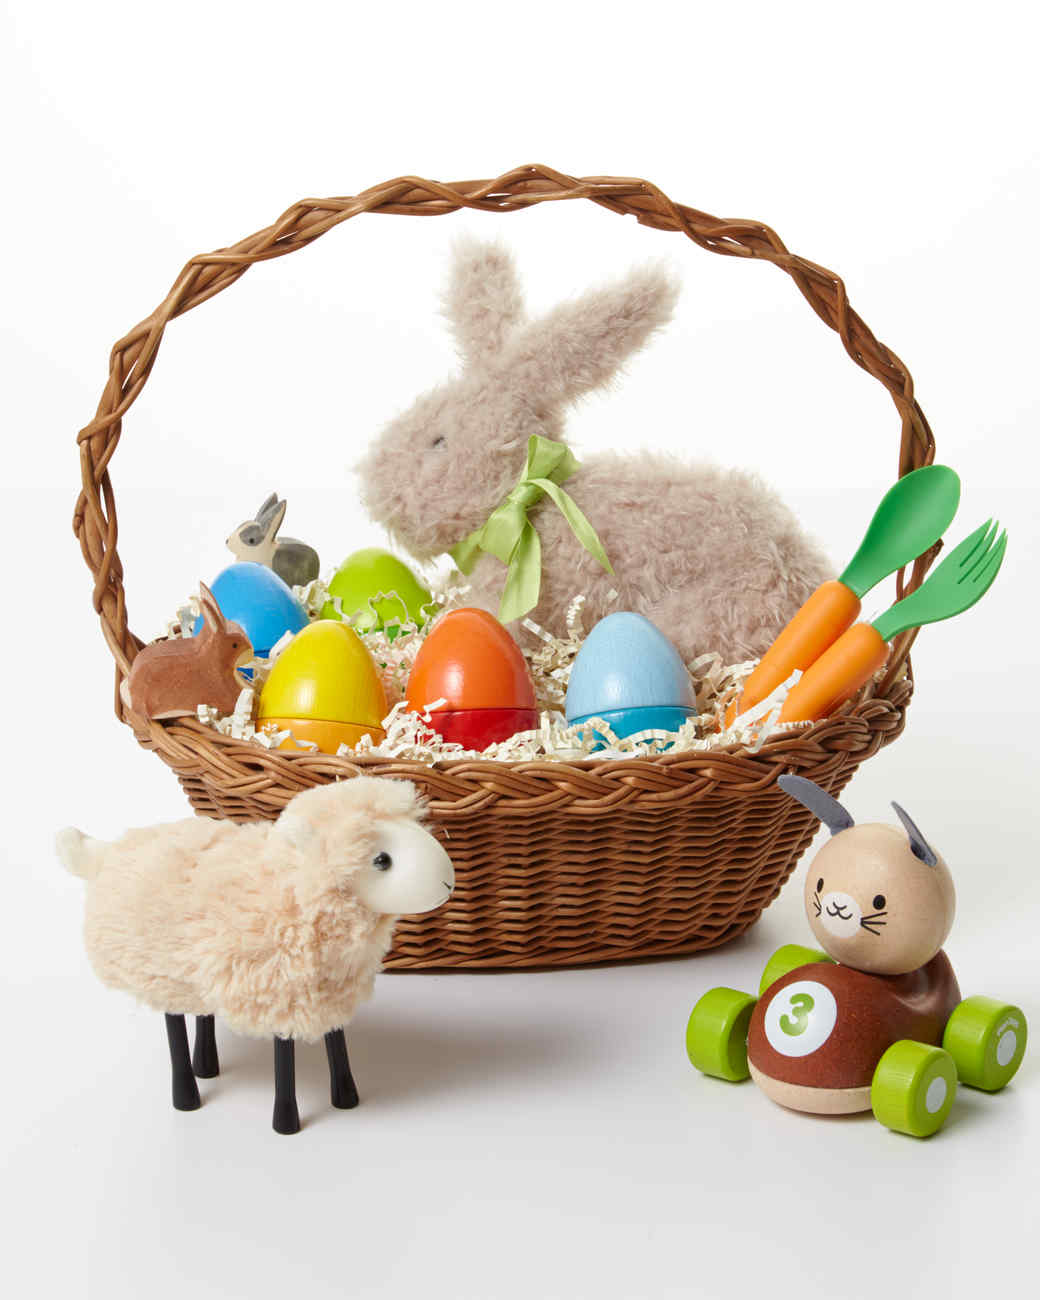 9 adorable easter basket ideas for toddlers martha stewart 9 adorable easter basket ideas for toddlers negle